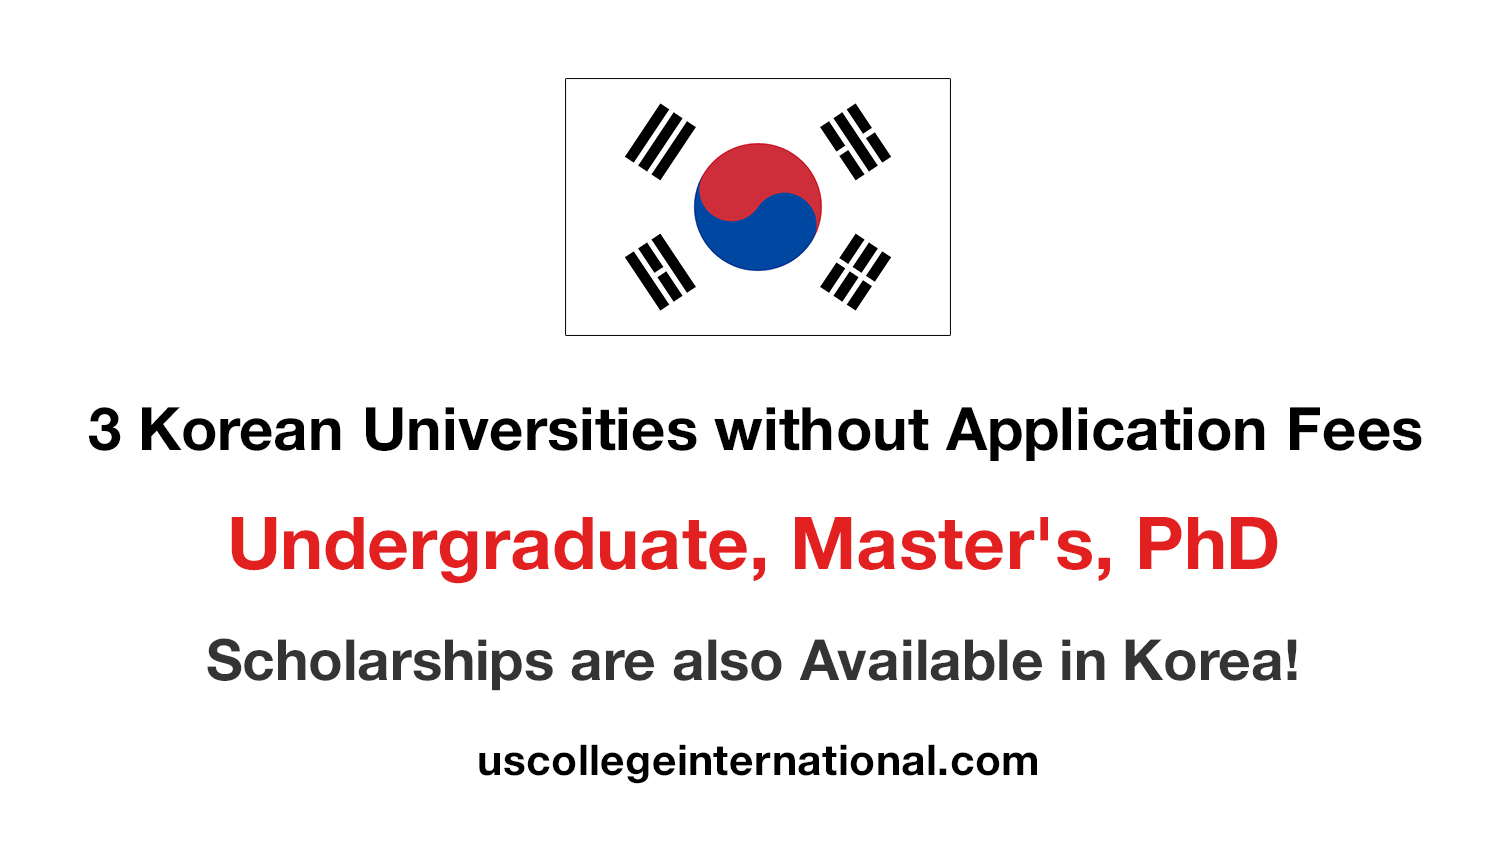 Korean Universities without Application Fees